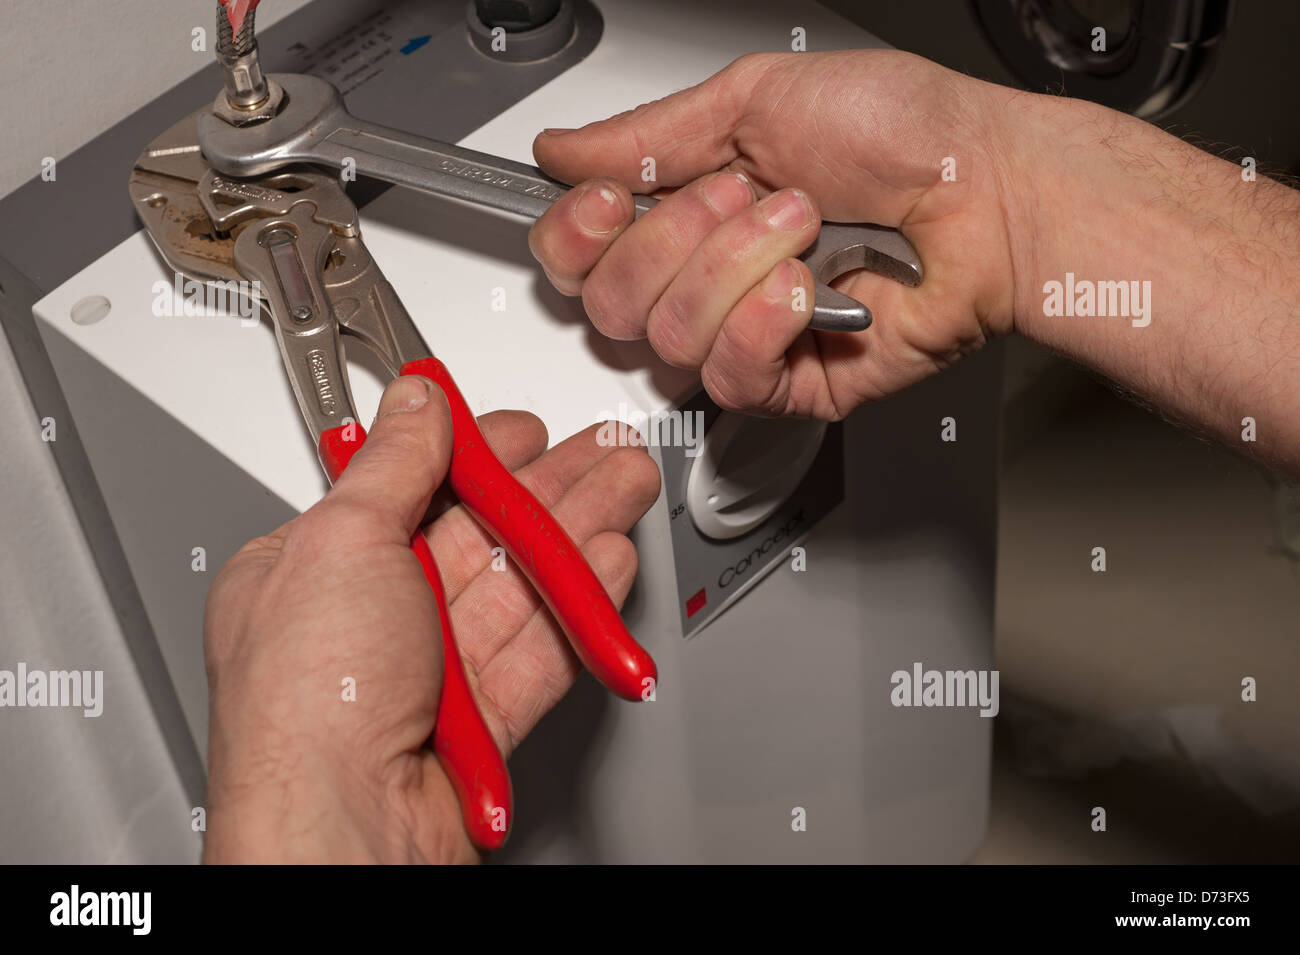 Berlin, Germany, a craftsman screwed to the supply of a water heater - Stock Image